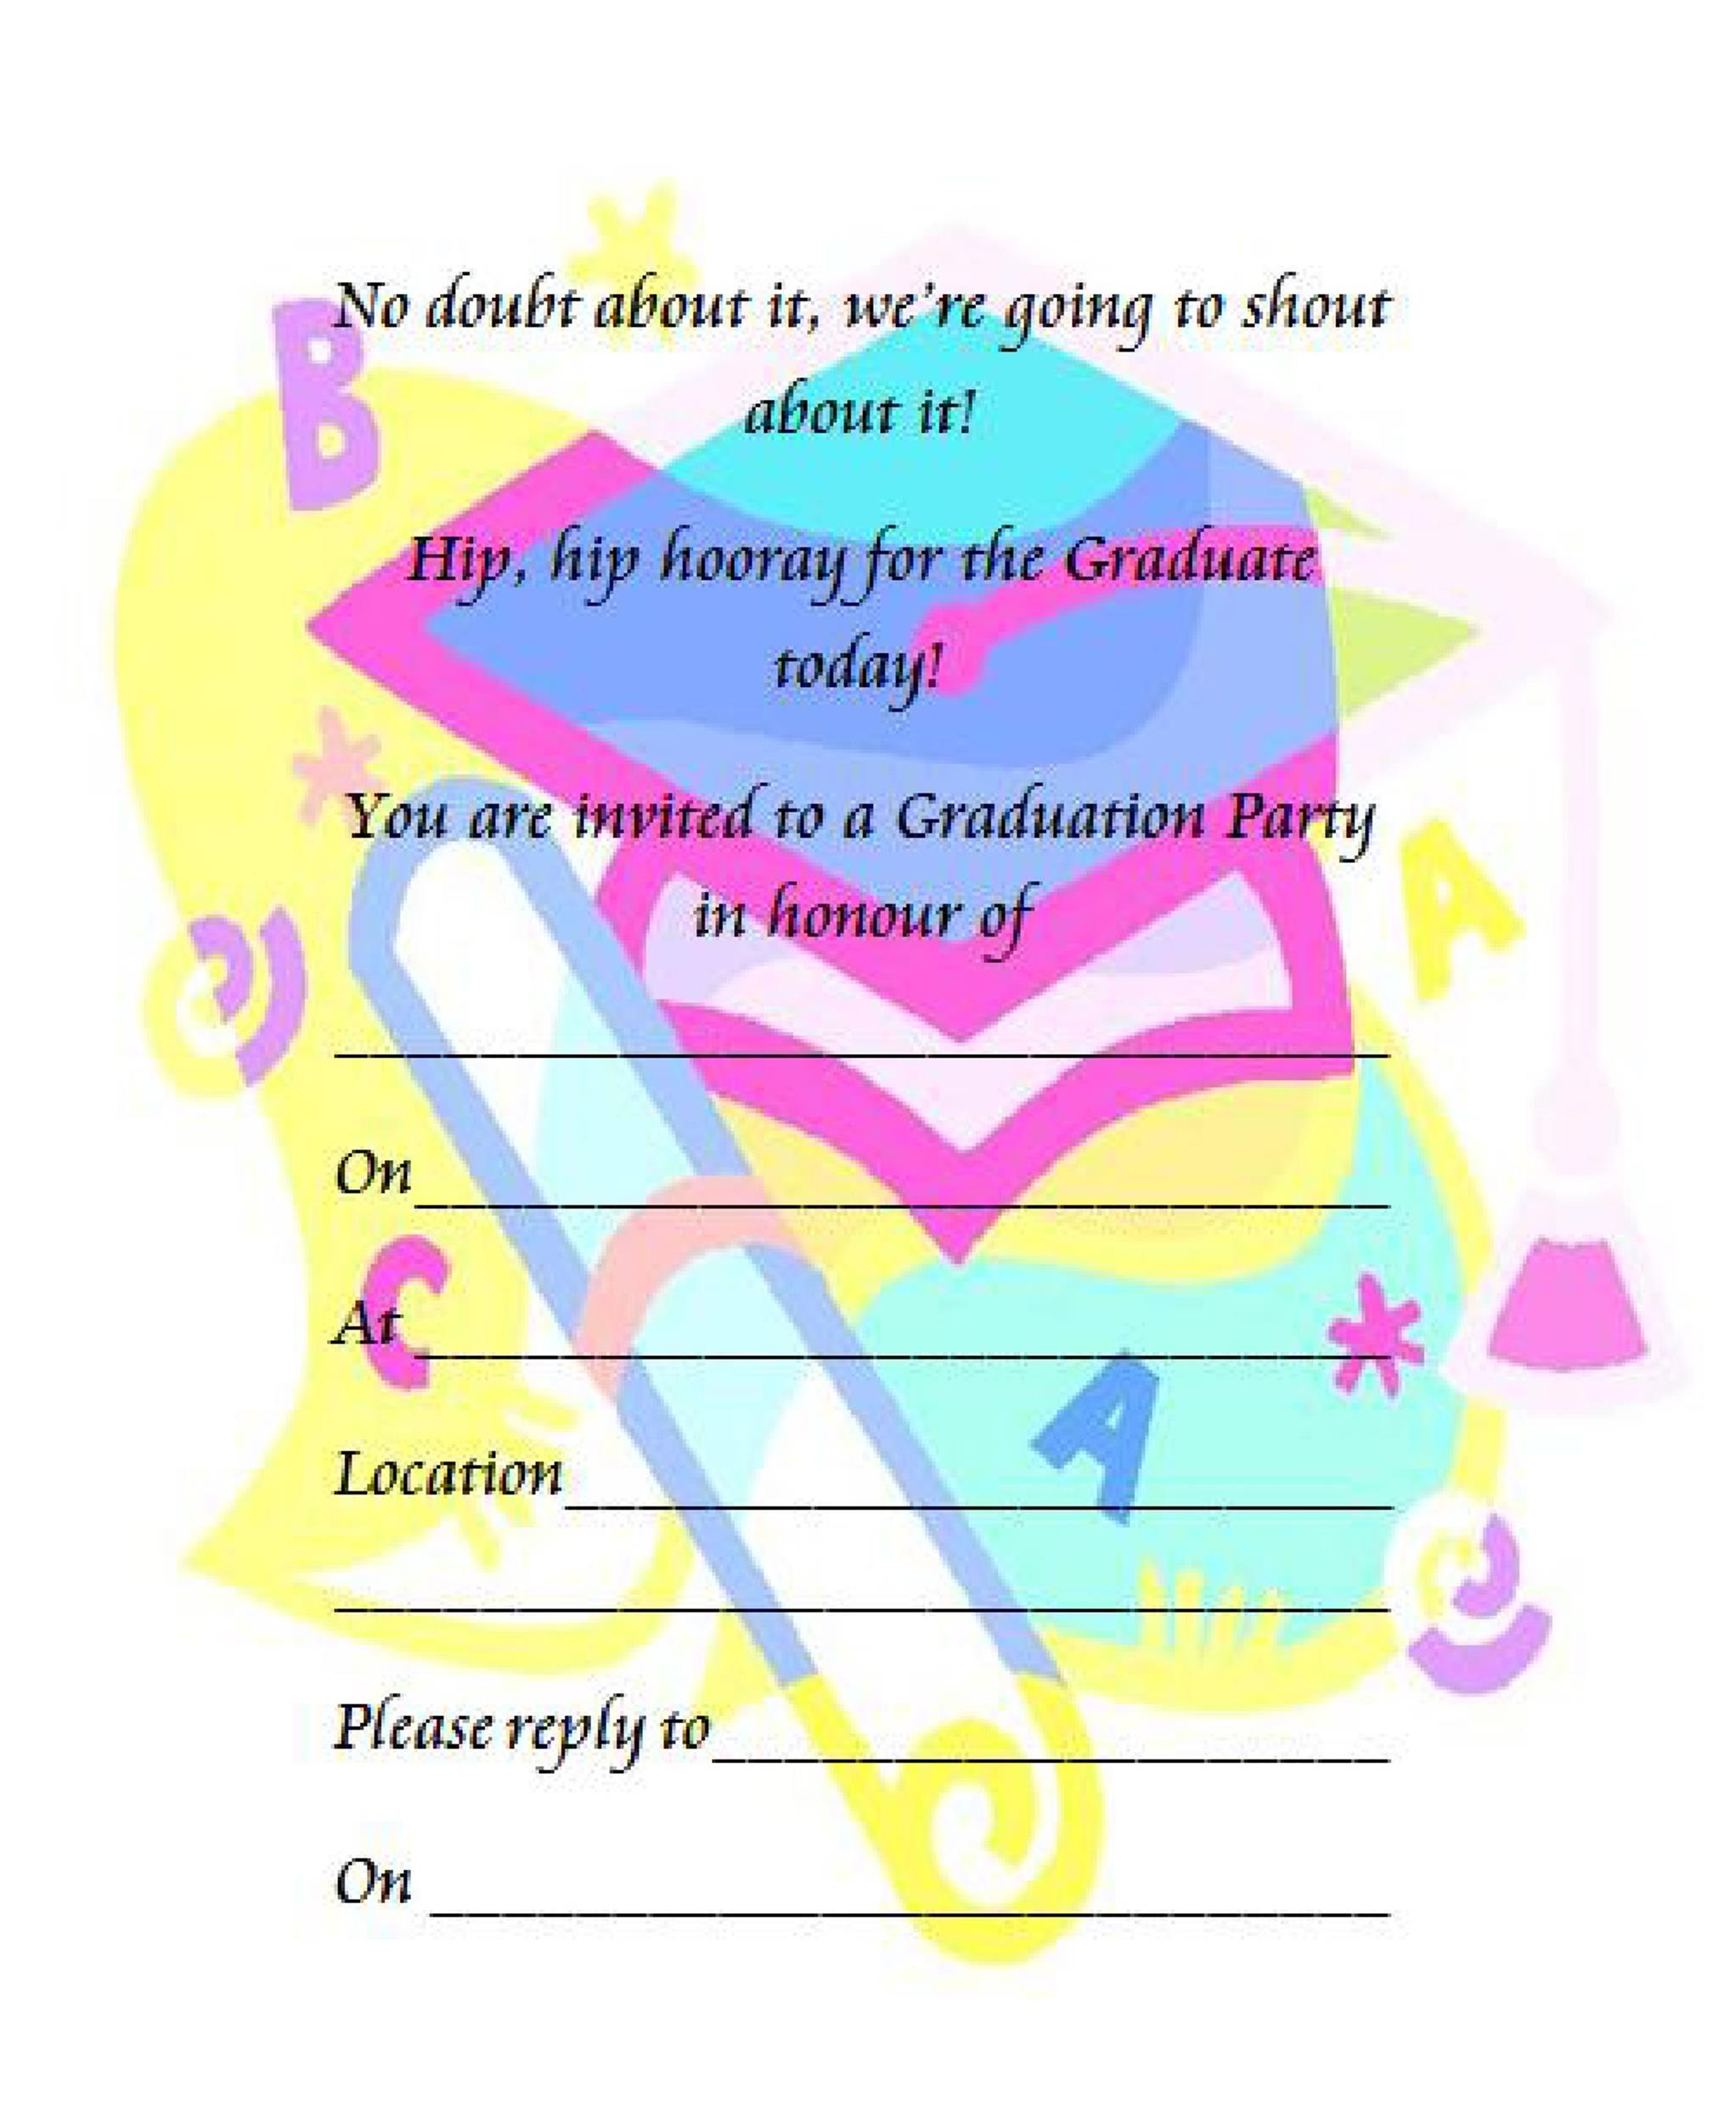 40 FREE Graduation Invitation Templates Template Lab – Photo Party Invitations Templates